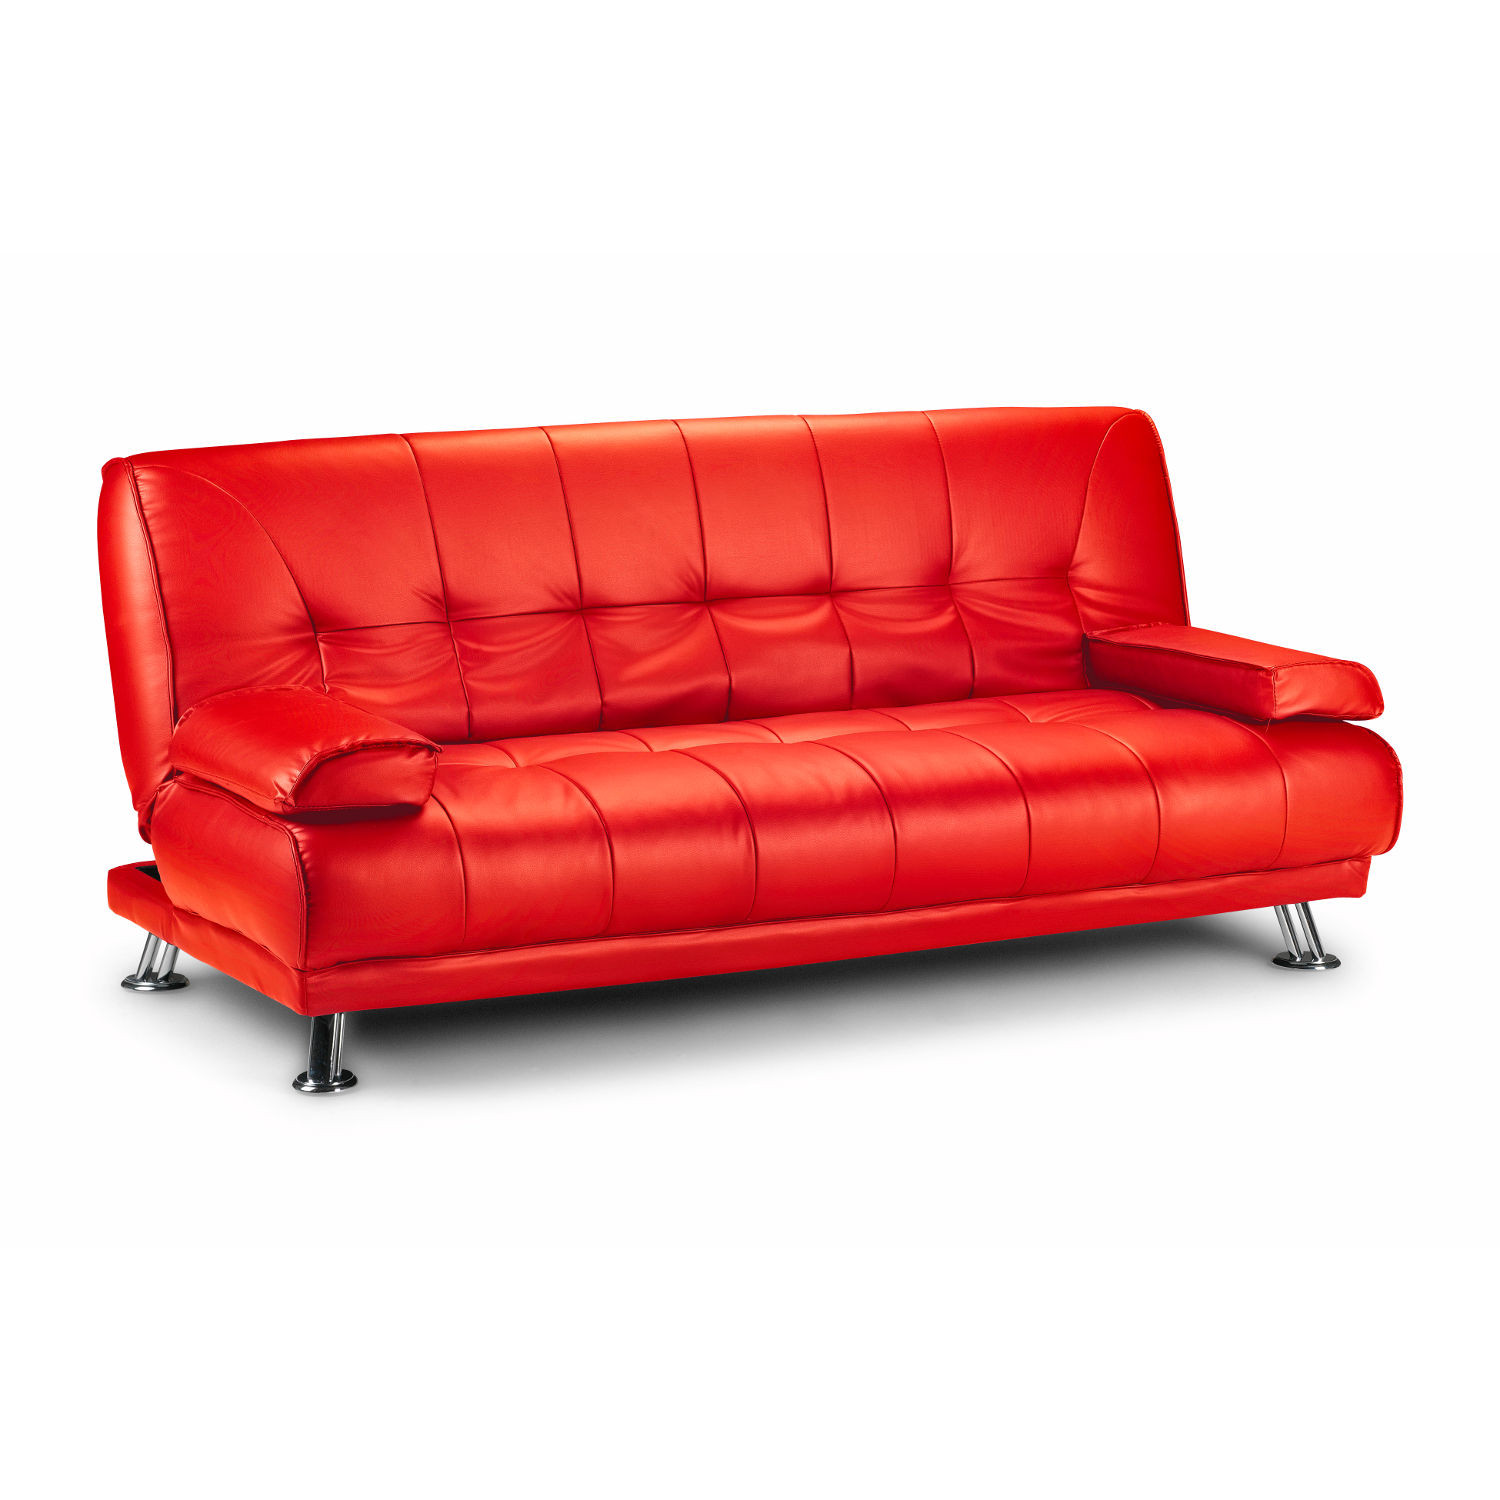 Best ideas about Red Sofa Beds . Save or Pin Red Sofa Beds Diamond Red Leather Sofa Bed TheSofa Now.